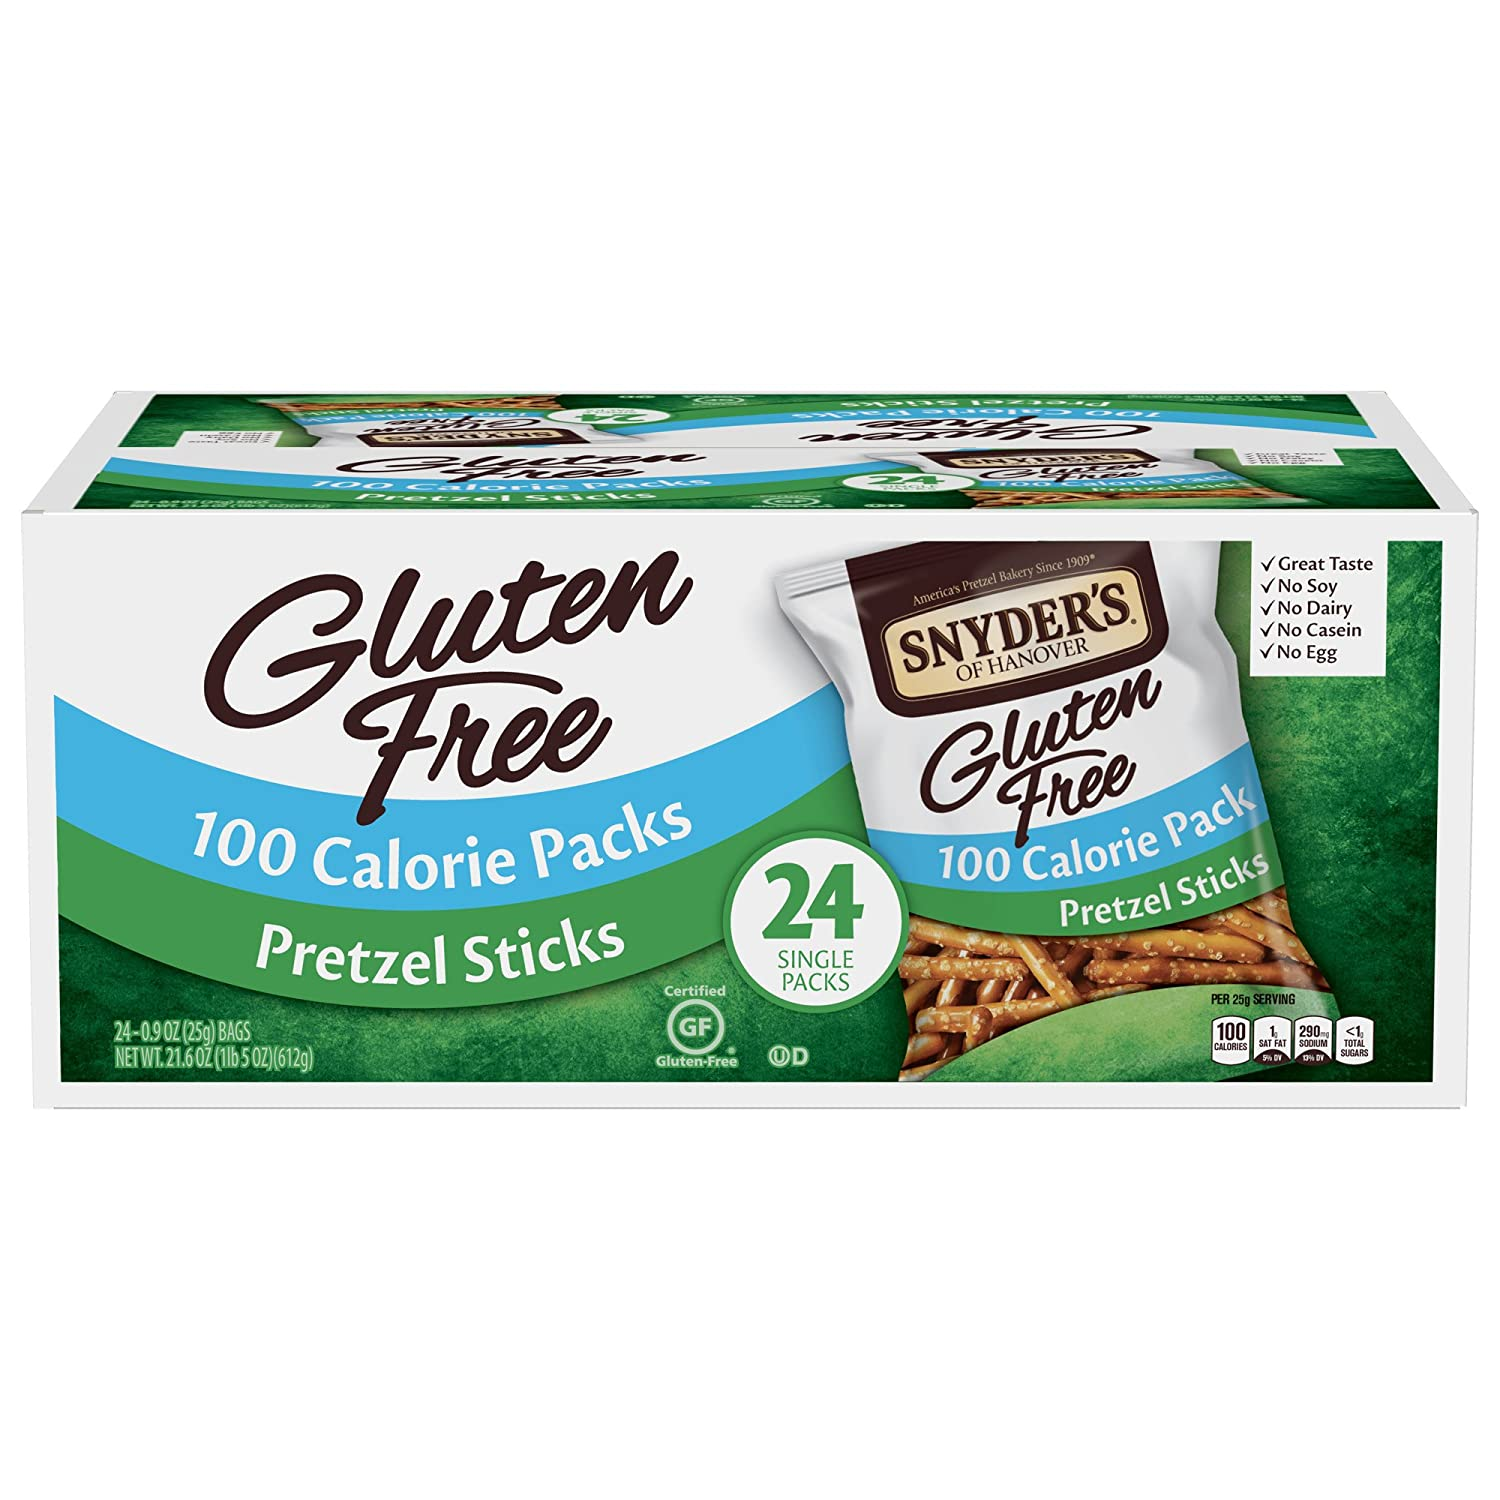 Snyder's of Hanover Gluten Free Pretzel Sticks, 100 Calorie Individual Packs, 24 Count